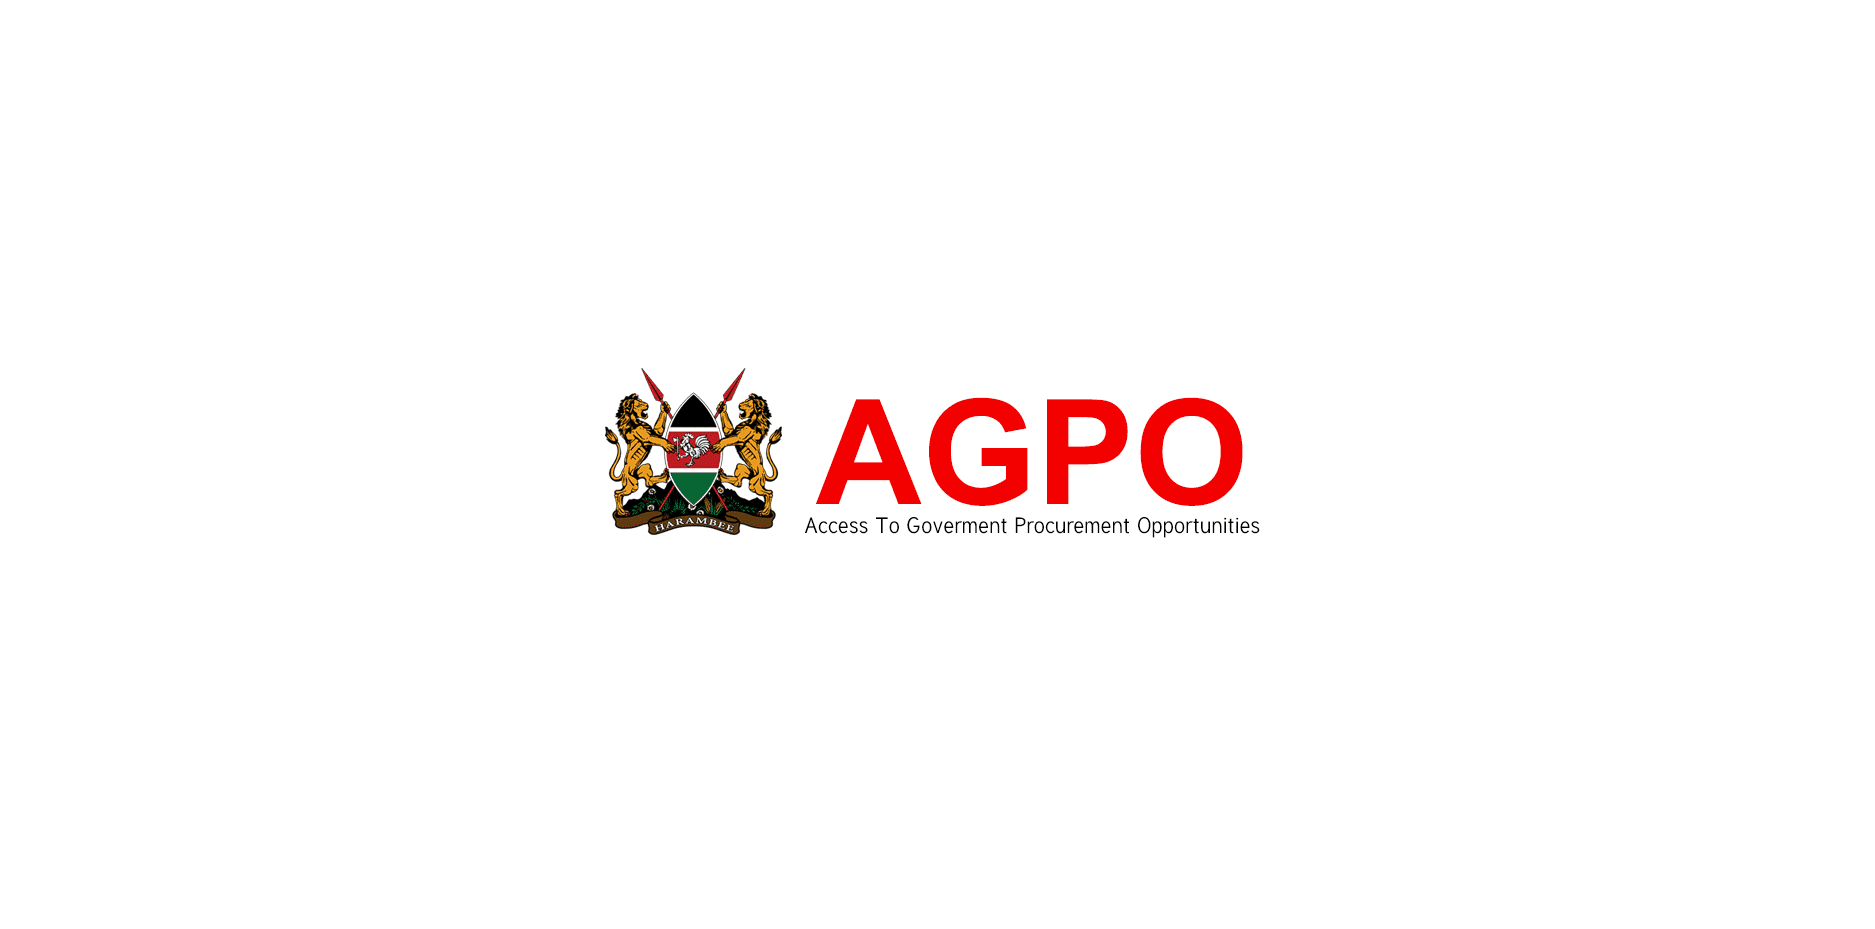 How to Get an AGPO Certificate in 2020